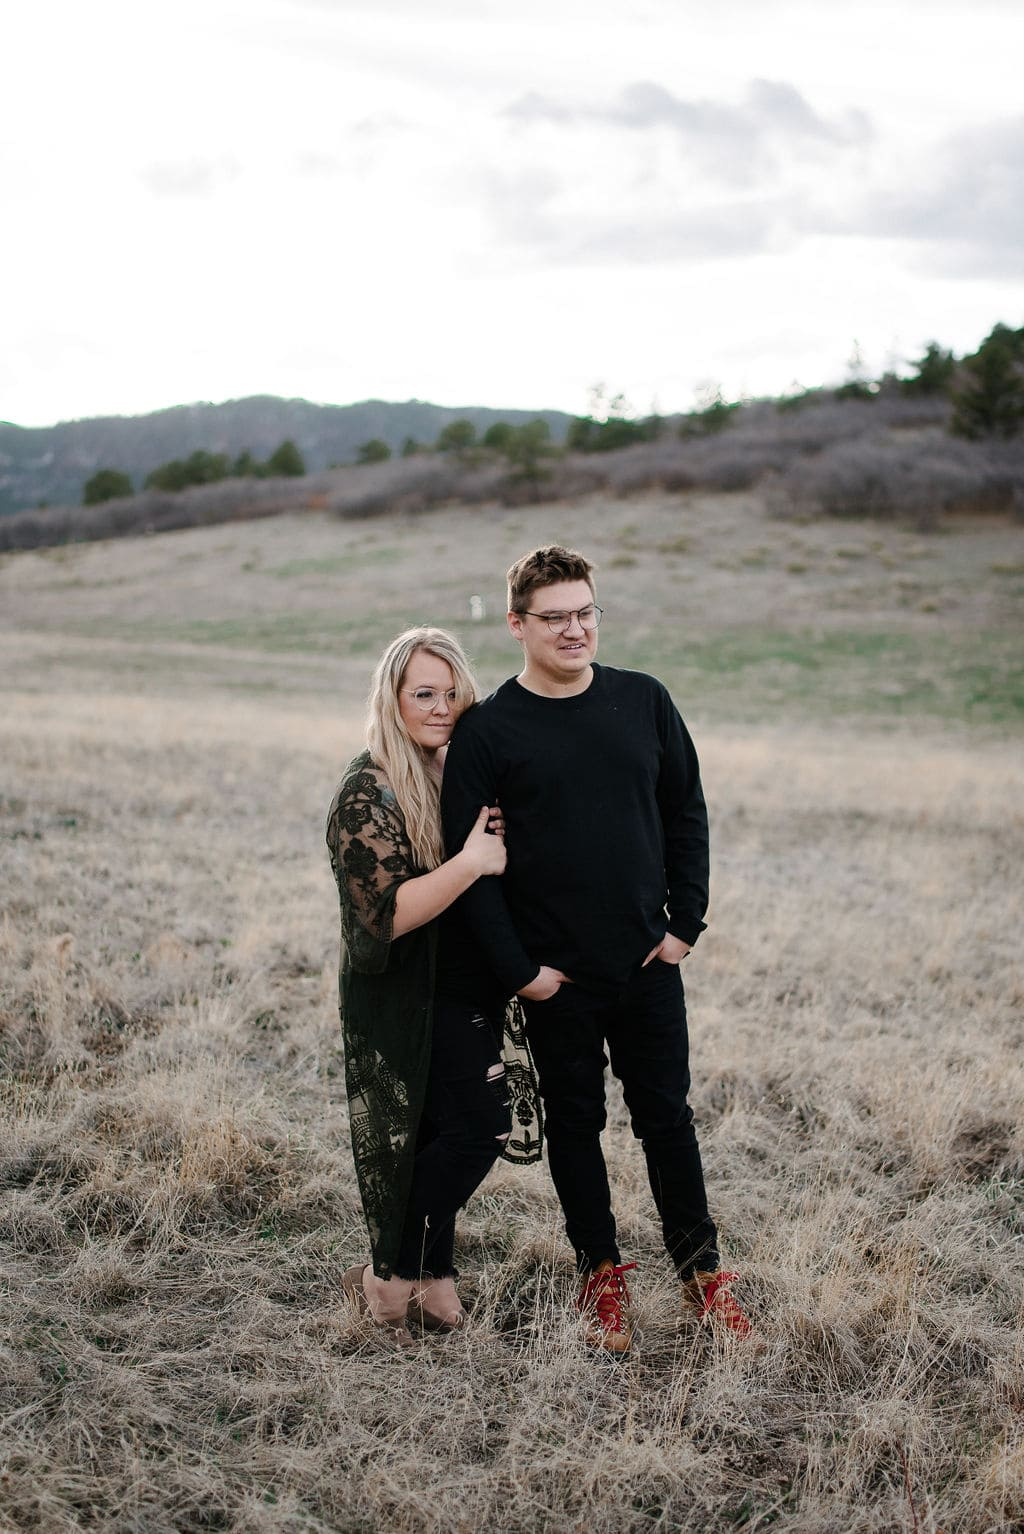 Colorado Couples Session at Spruce Mountain Open Space